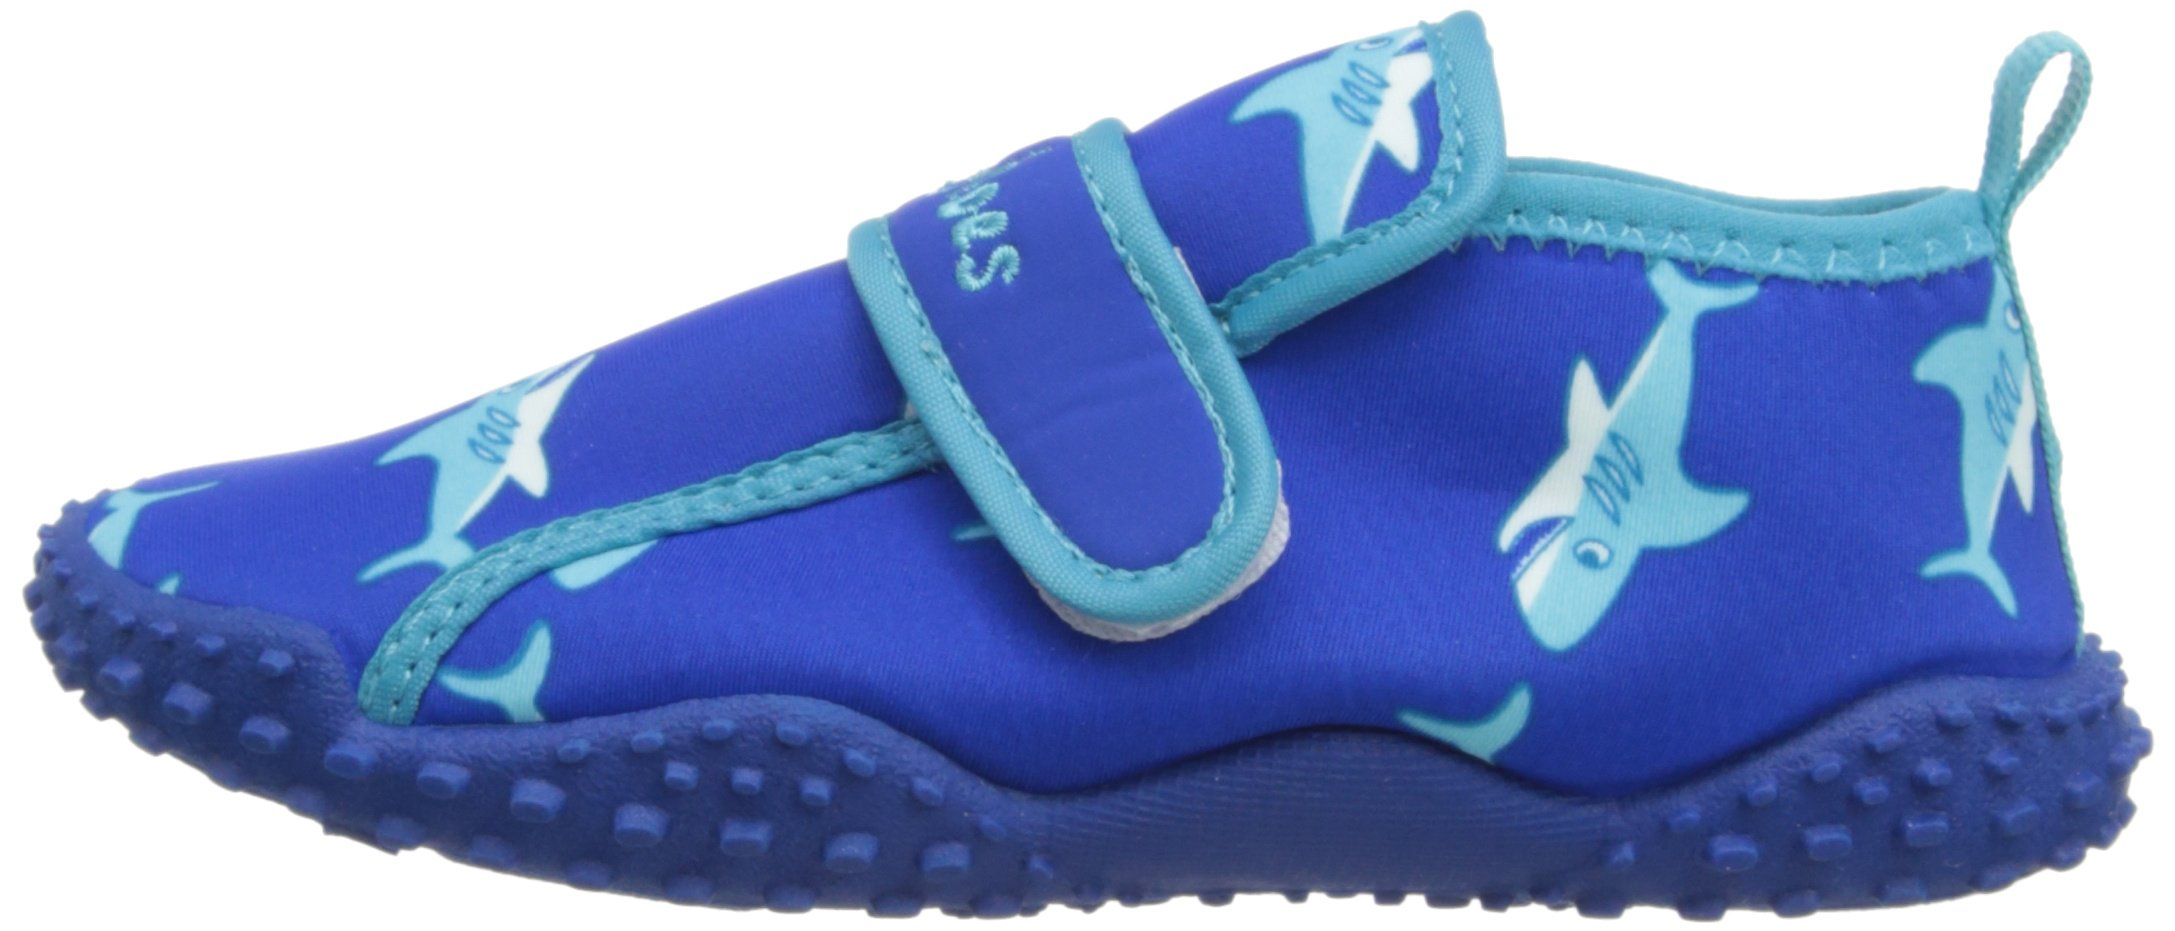 Playshoes Boys UV Protection Shark Collection Aqua Swimming/Beach Shoes (11.5 M US Little Kid) by Playshoes (Image #5)